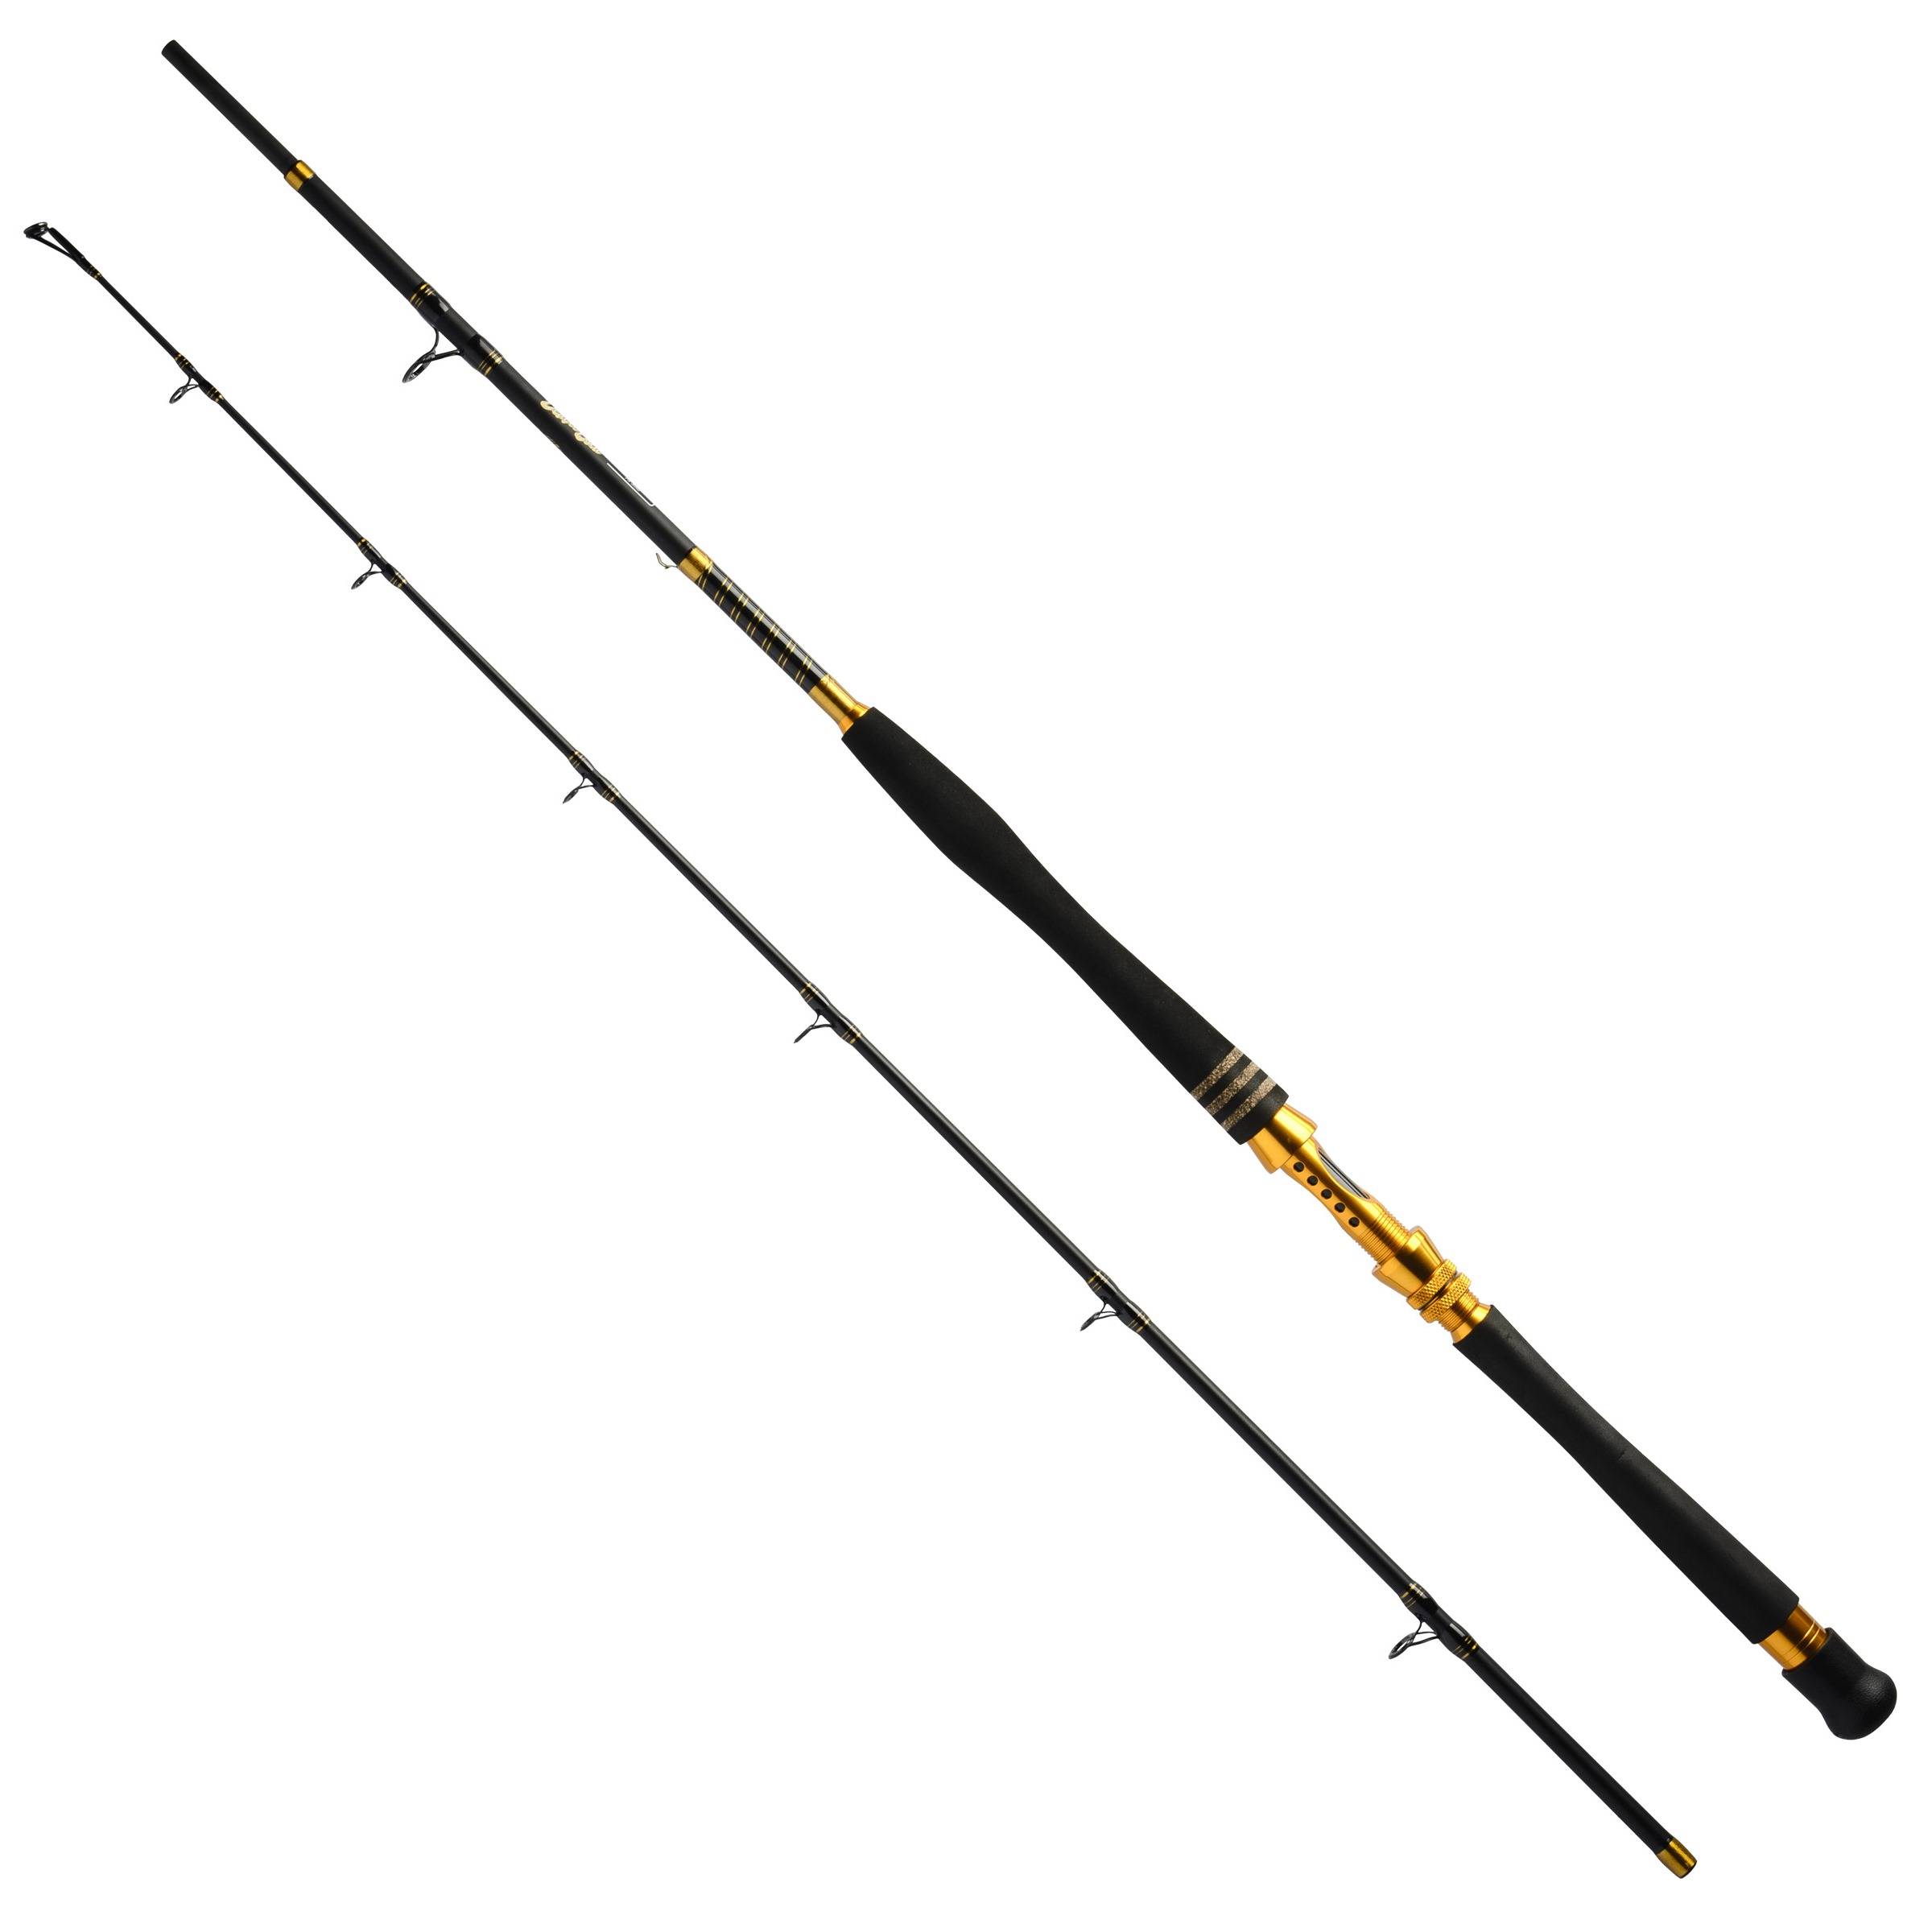 GIANTS FISHING - Prut Deluxe Boat 210cm / 50lb